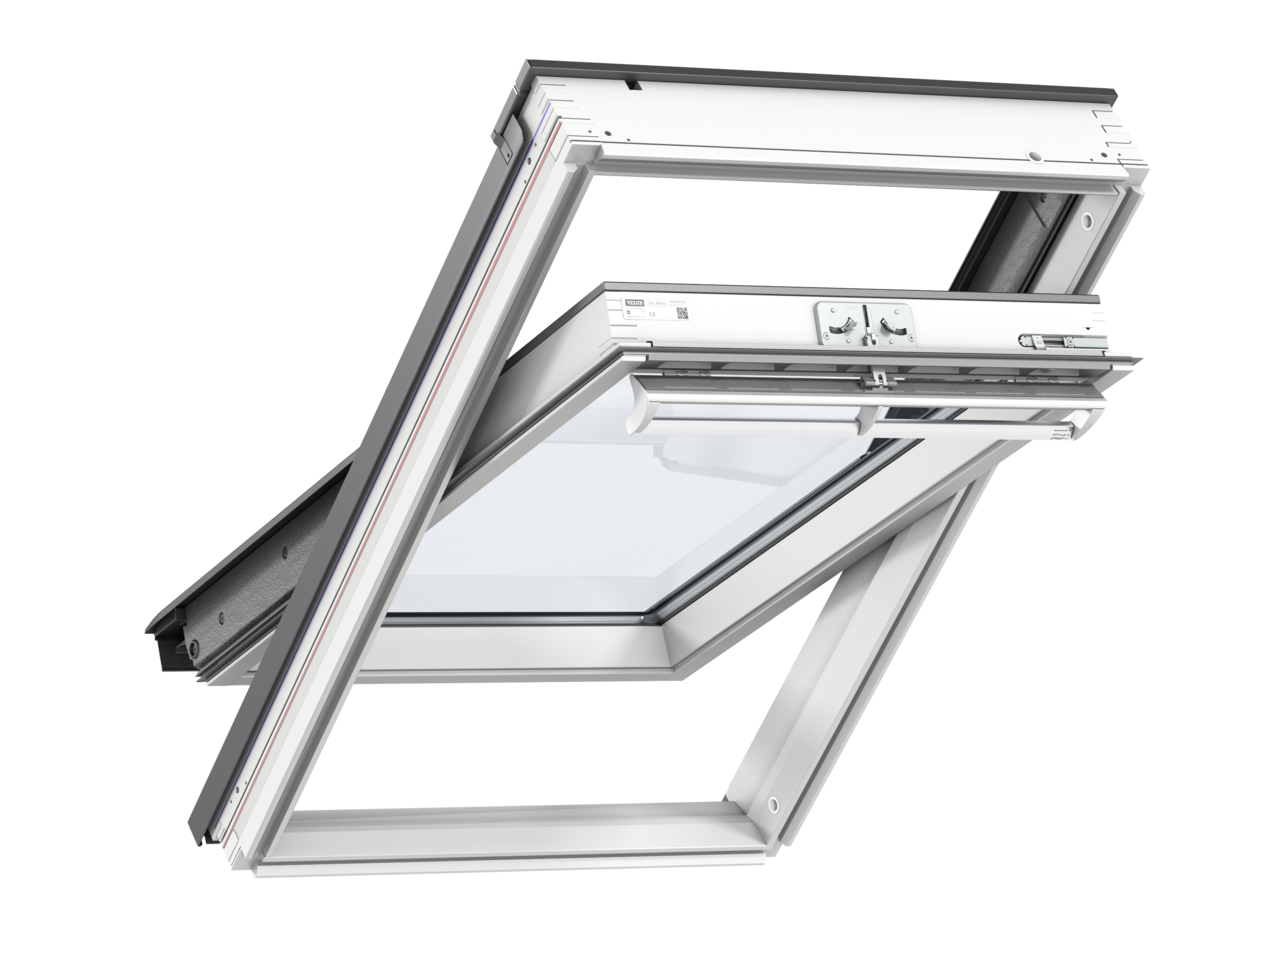 Velux GGL PK08 940 x 1400mm Centre Pivot 70QPane Roof Window - White Painted